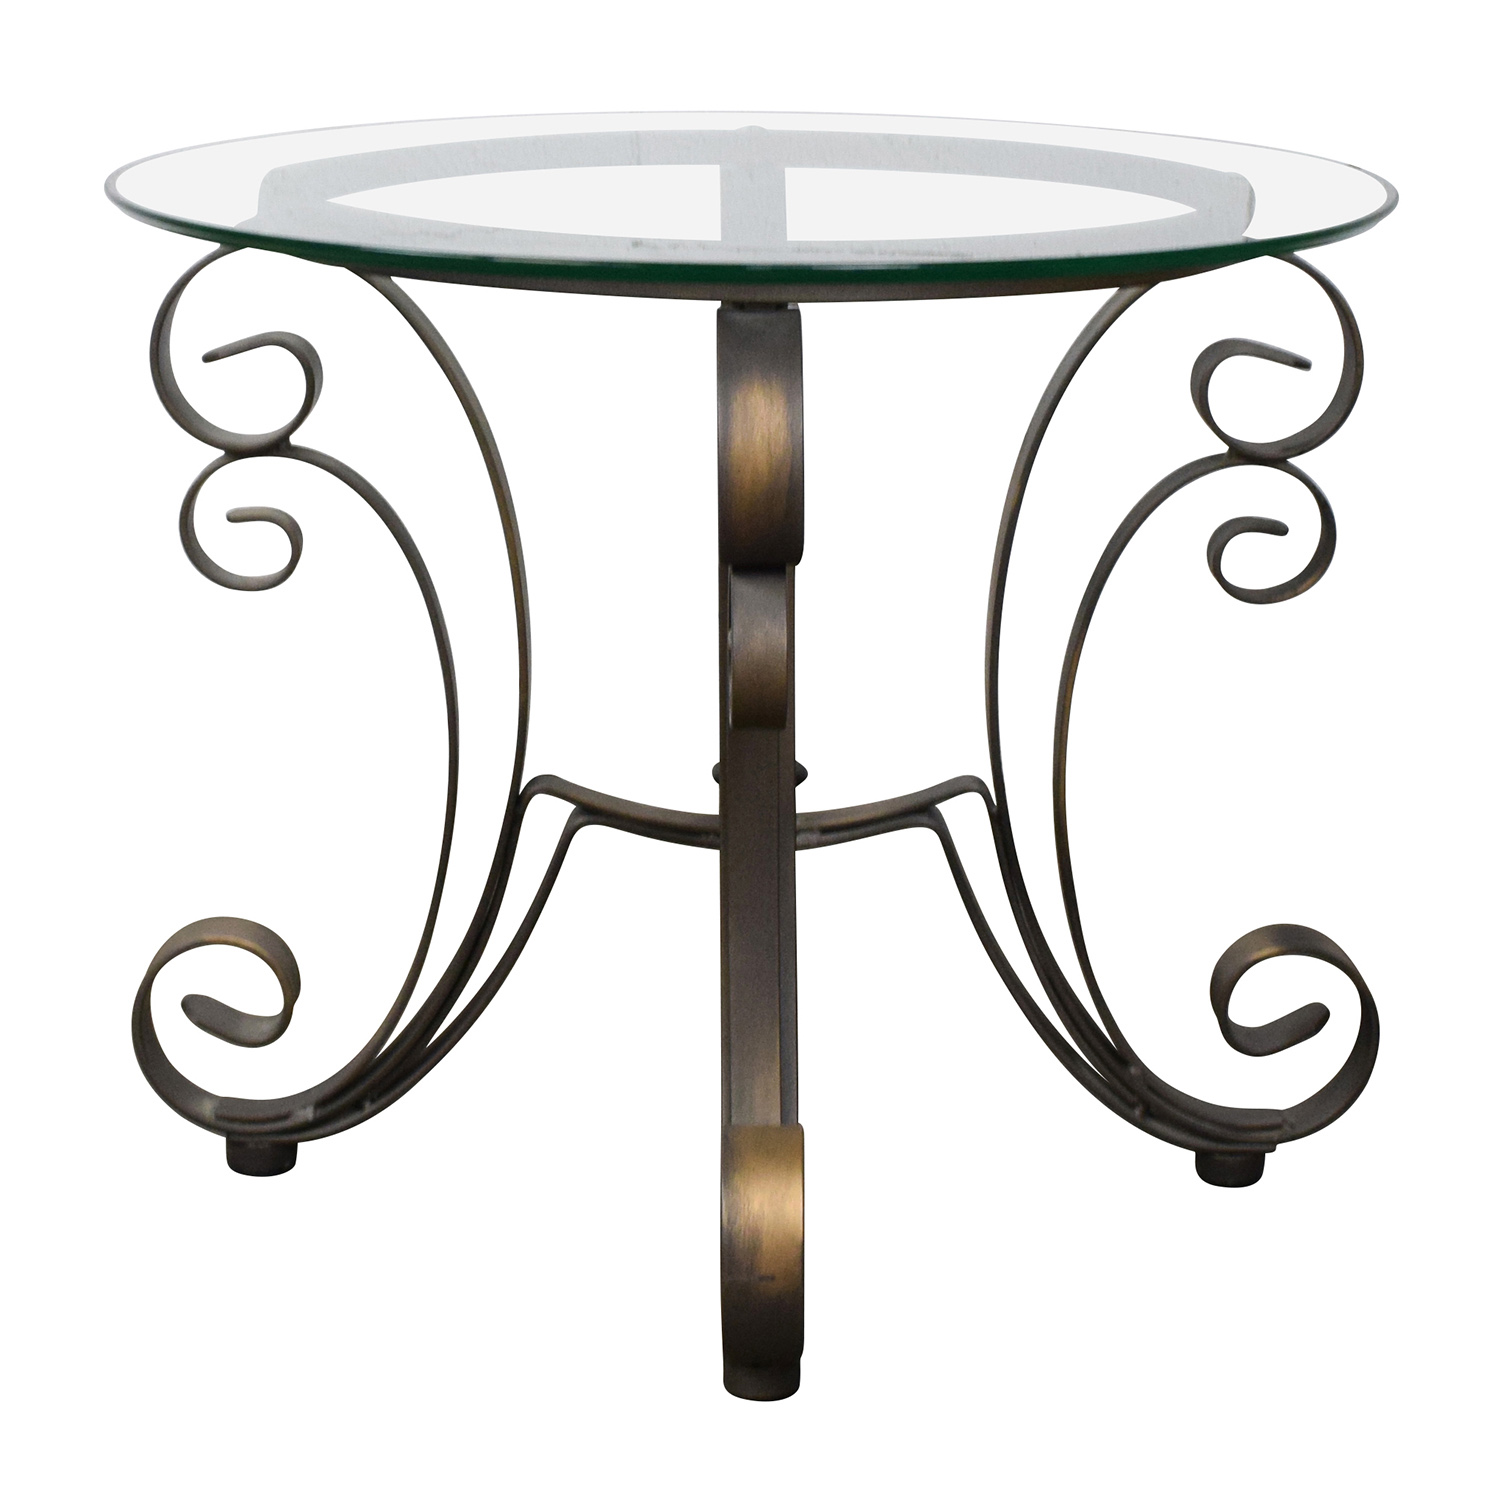 Rooms To Go Rooms To Go Glass Top Side Table with Bronze Base nj